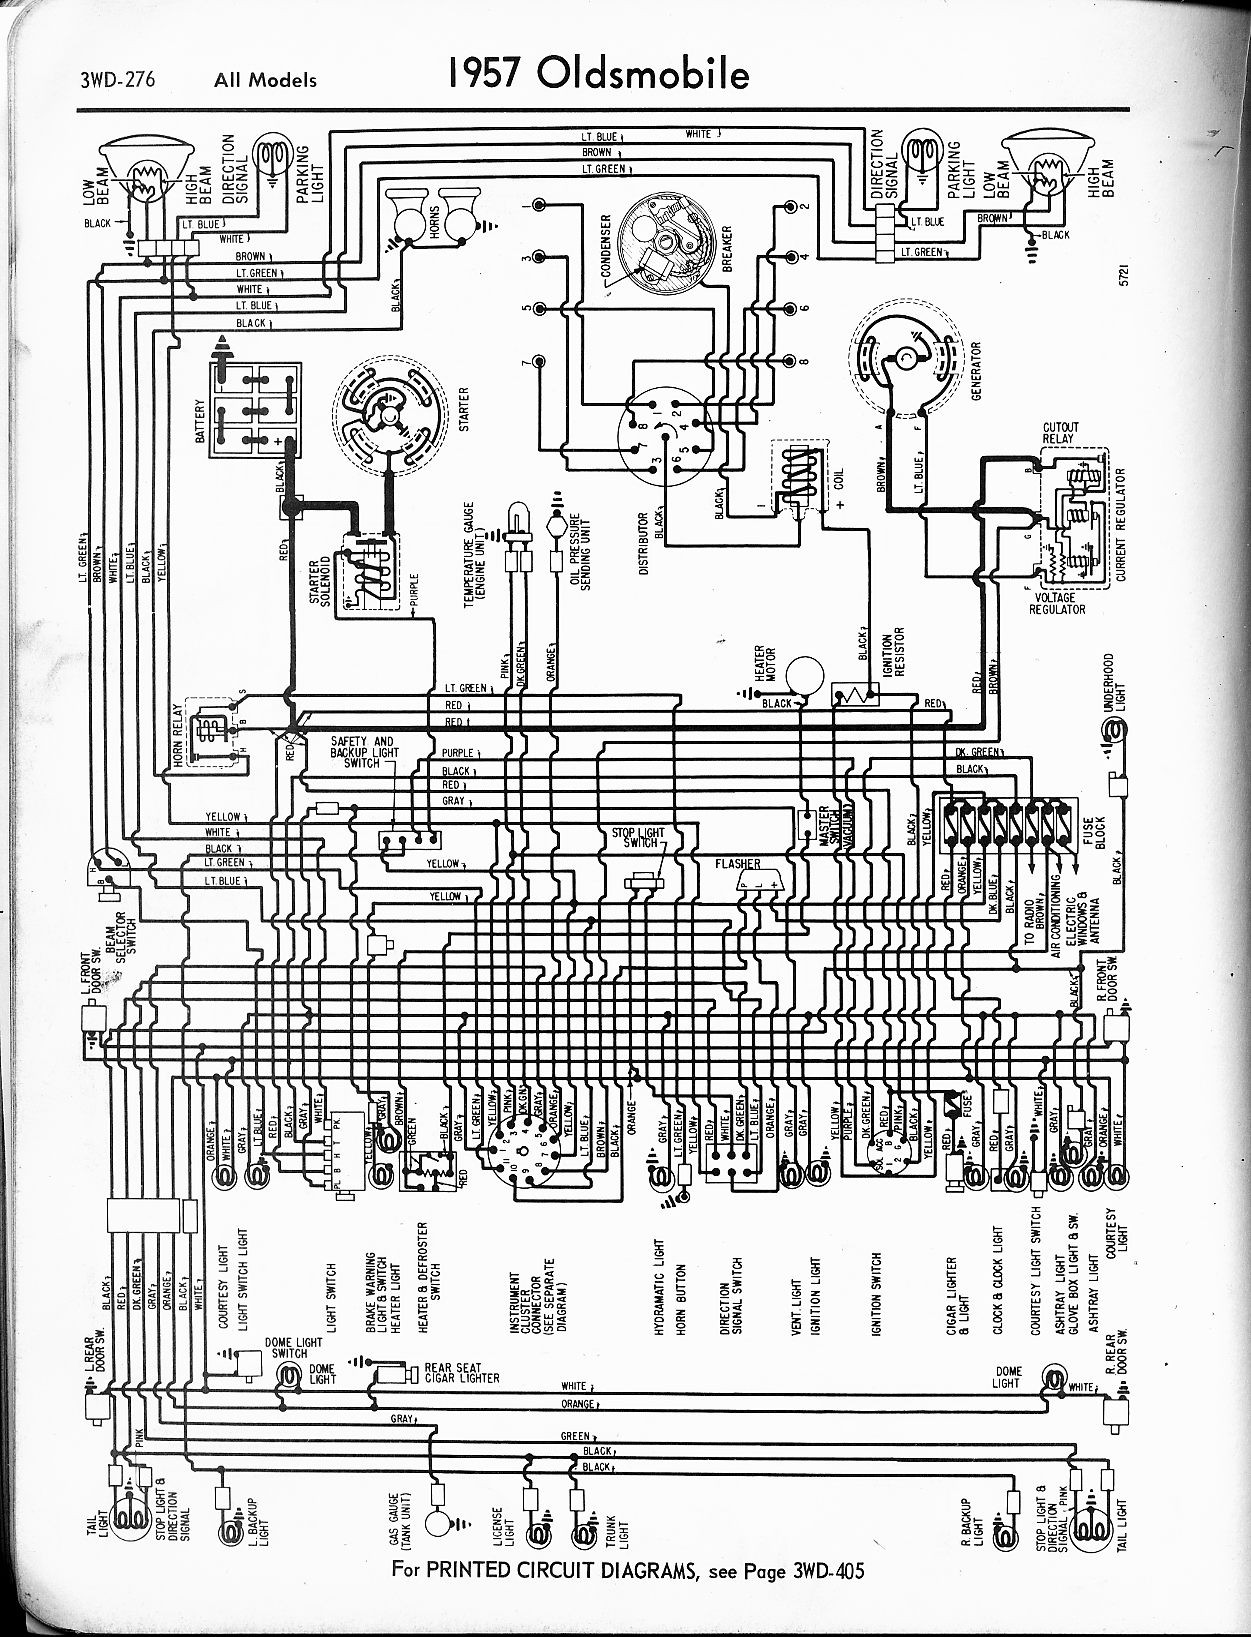 82 mercury wiring diagram 19 sg dbd de \u20221984 mercury tracer wiring diagram thebuffalotruck com mercury mountaineer radio wiring diagram mercury 60 hp wiring diagram